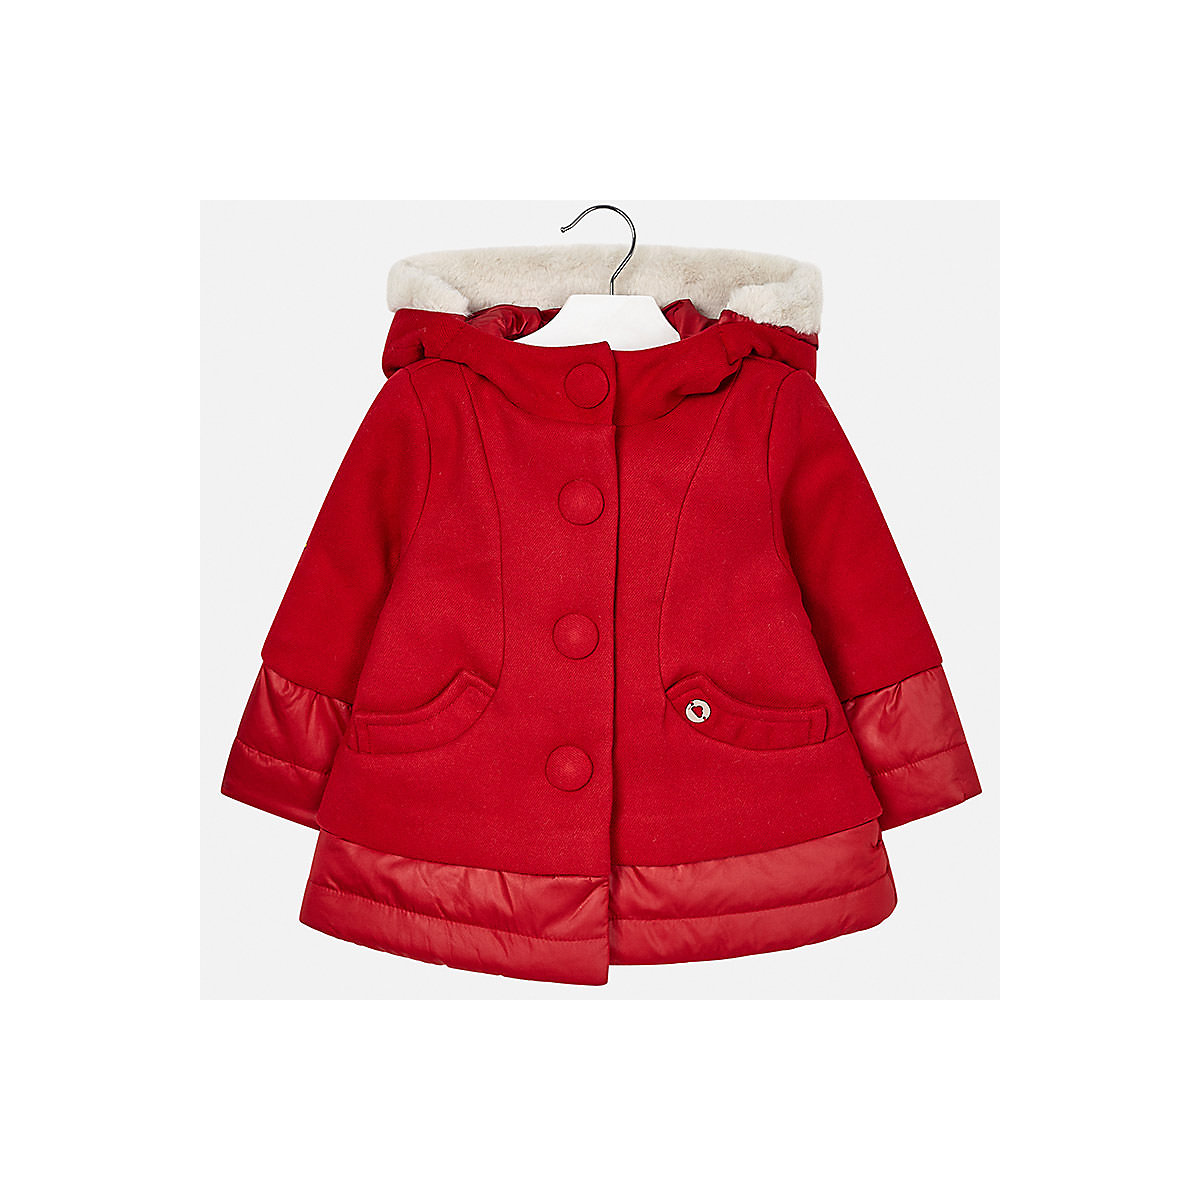 MAYORAL Jackets & Coats 8849874 jacket for girl boy coat baby clothes children clothing outwear boys girls